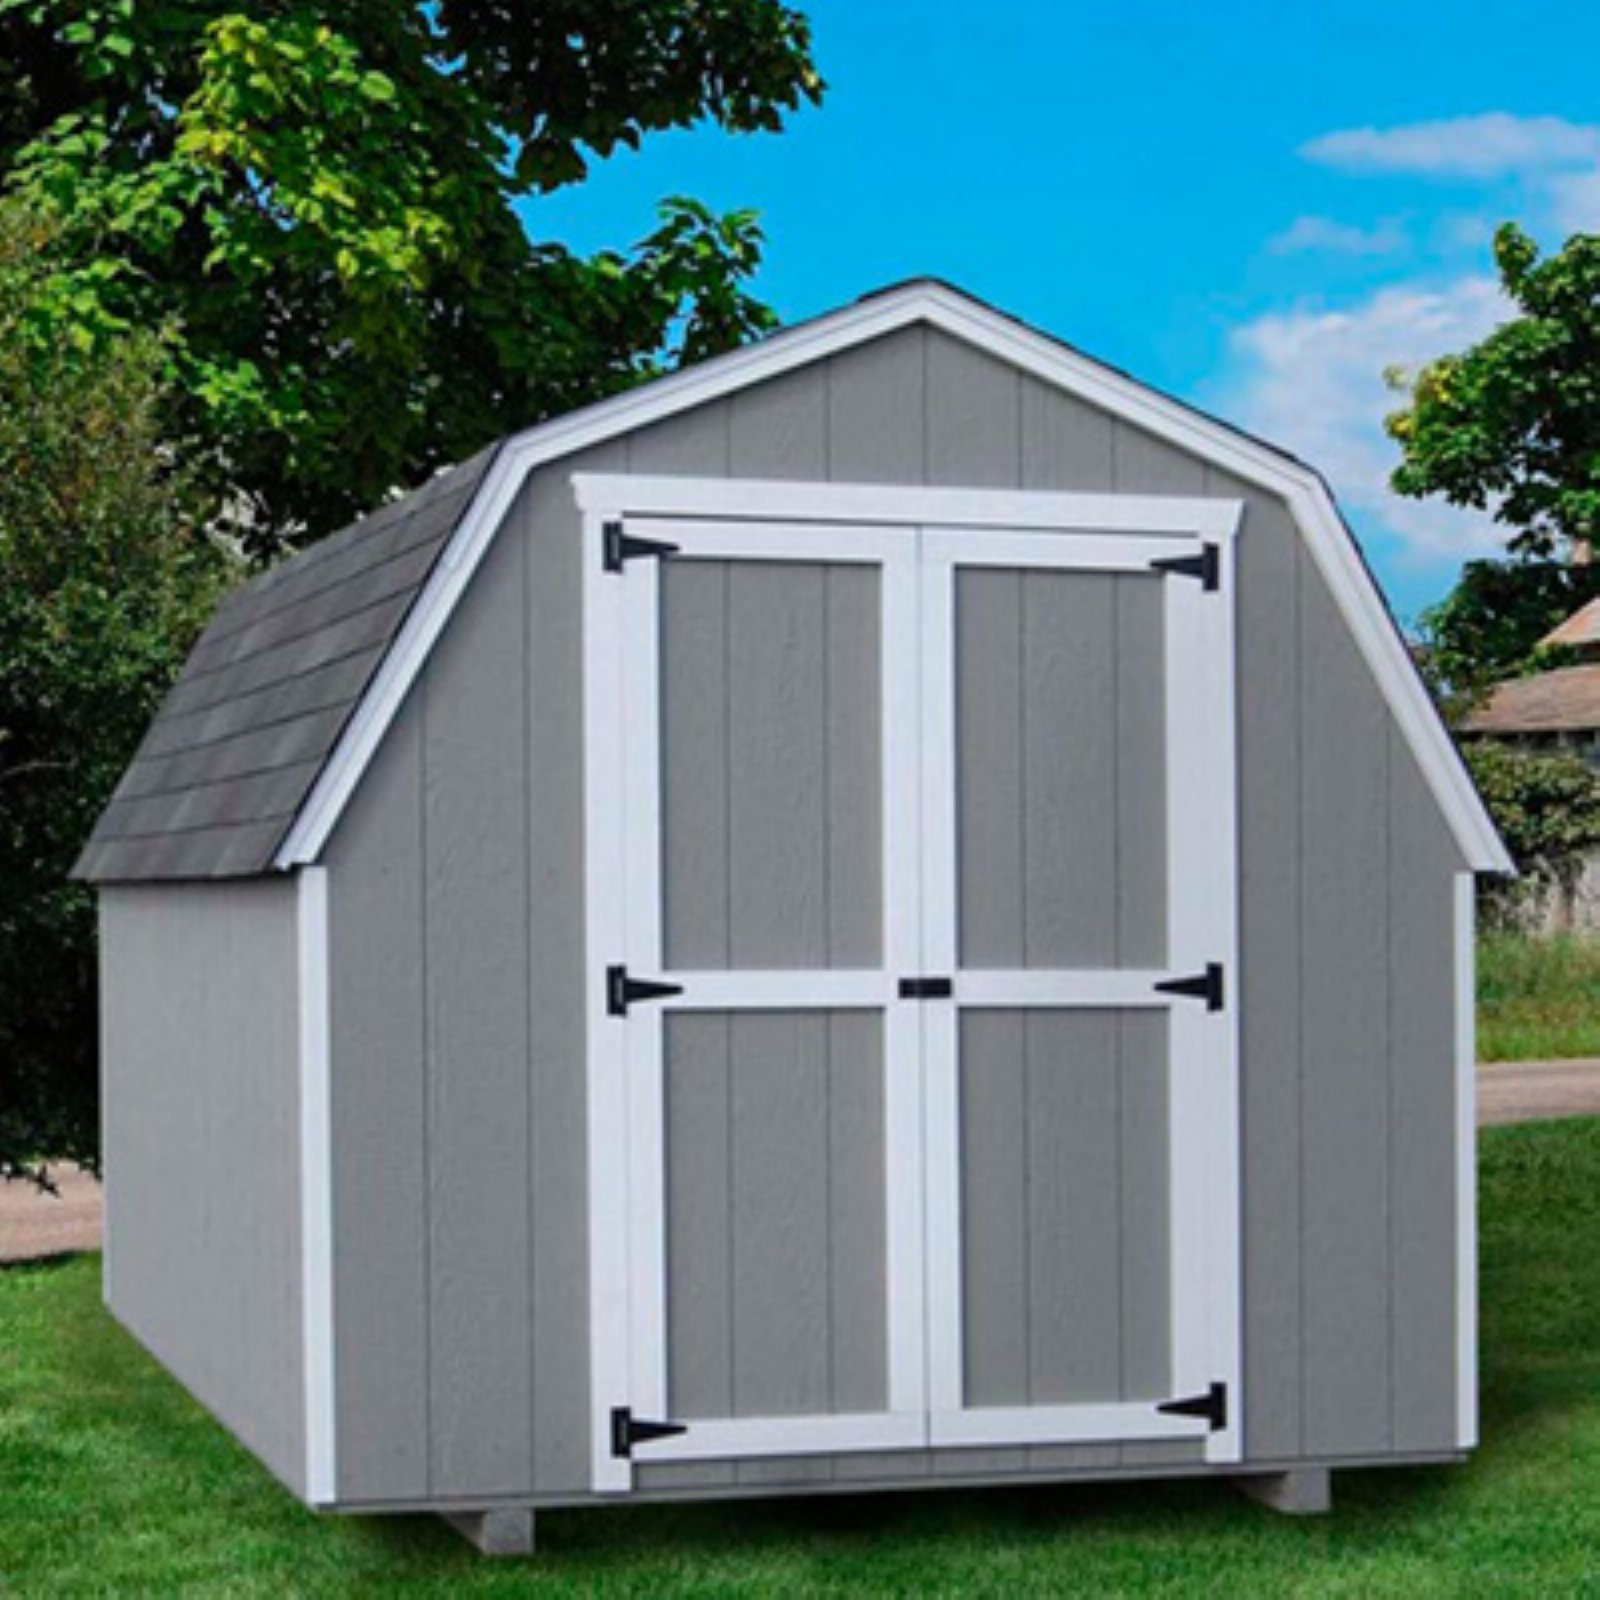 Little Cottage 12 x 10 ft. Value Gambrel Barn Precut Storage Shed - 4 ft. Barn